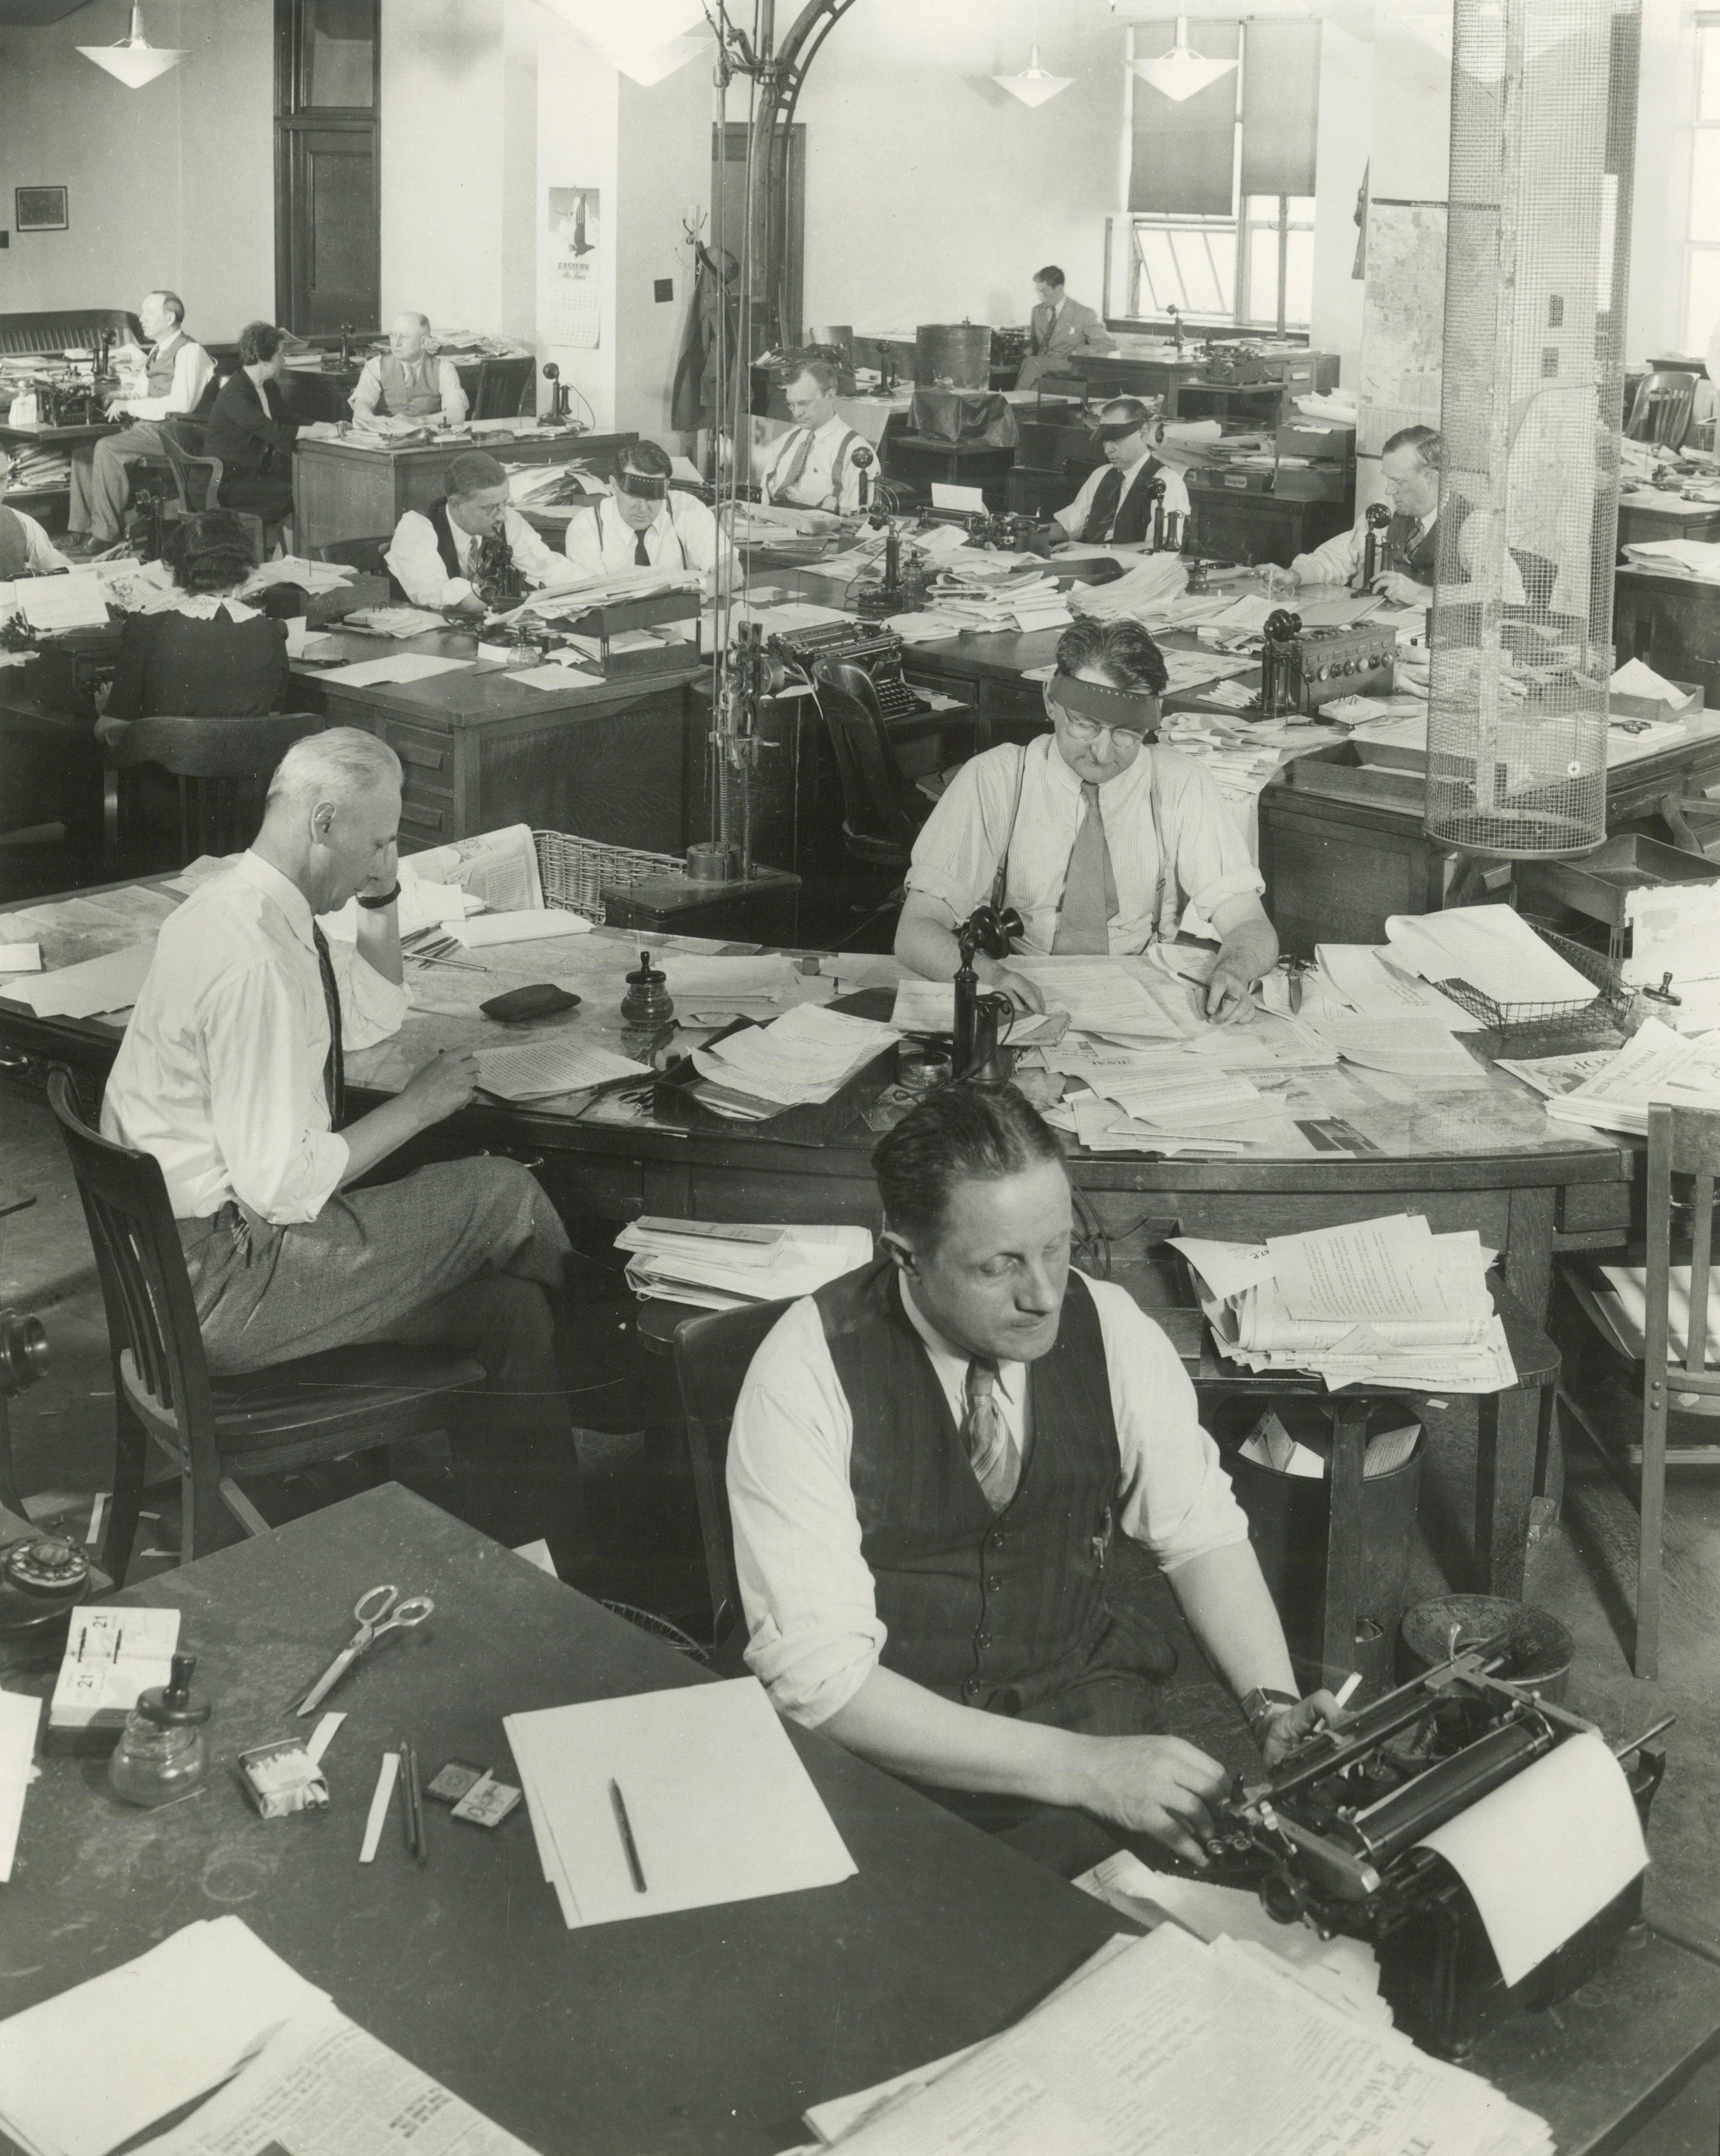 <table class=&quot;lightbox&quot;><tr><td colspan=2 class=&quot;lightbox-title&quot;>Milwaukee Journal Newsroom</td></tr><tr><td colspan=2 class=&quot;lightbox-caption&quot;>A room full of employees work at their desks on the fourth floor of the Milwaukee Journal building in 1943. </td></tr><tr><td colspan=2 class=&quot;lightbox-spacer&quot;></td></tr><tr class=&quot;lightbox-detail&quot;><td class=&quot;cell-title&quot;>Source: </td><td class=&quot;cell-value&quot;>From the Historic Photo Collection of the Milwaukee Public Library. Reprinted with permission.<br /><a href=&quot;http://content.mpl.org/cdm/singleitem/collection/HstoricPho/id/3483/rec/9&quot; target=&quot;_blank&quot;>Milwaukee Public Library</a></td></tr><tr class=&quot;filler-row&quot;><td colspan=2>&nbsp;</td></tr></table>